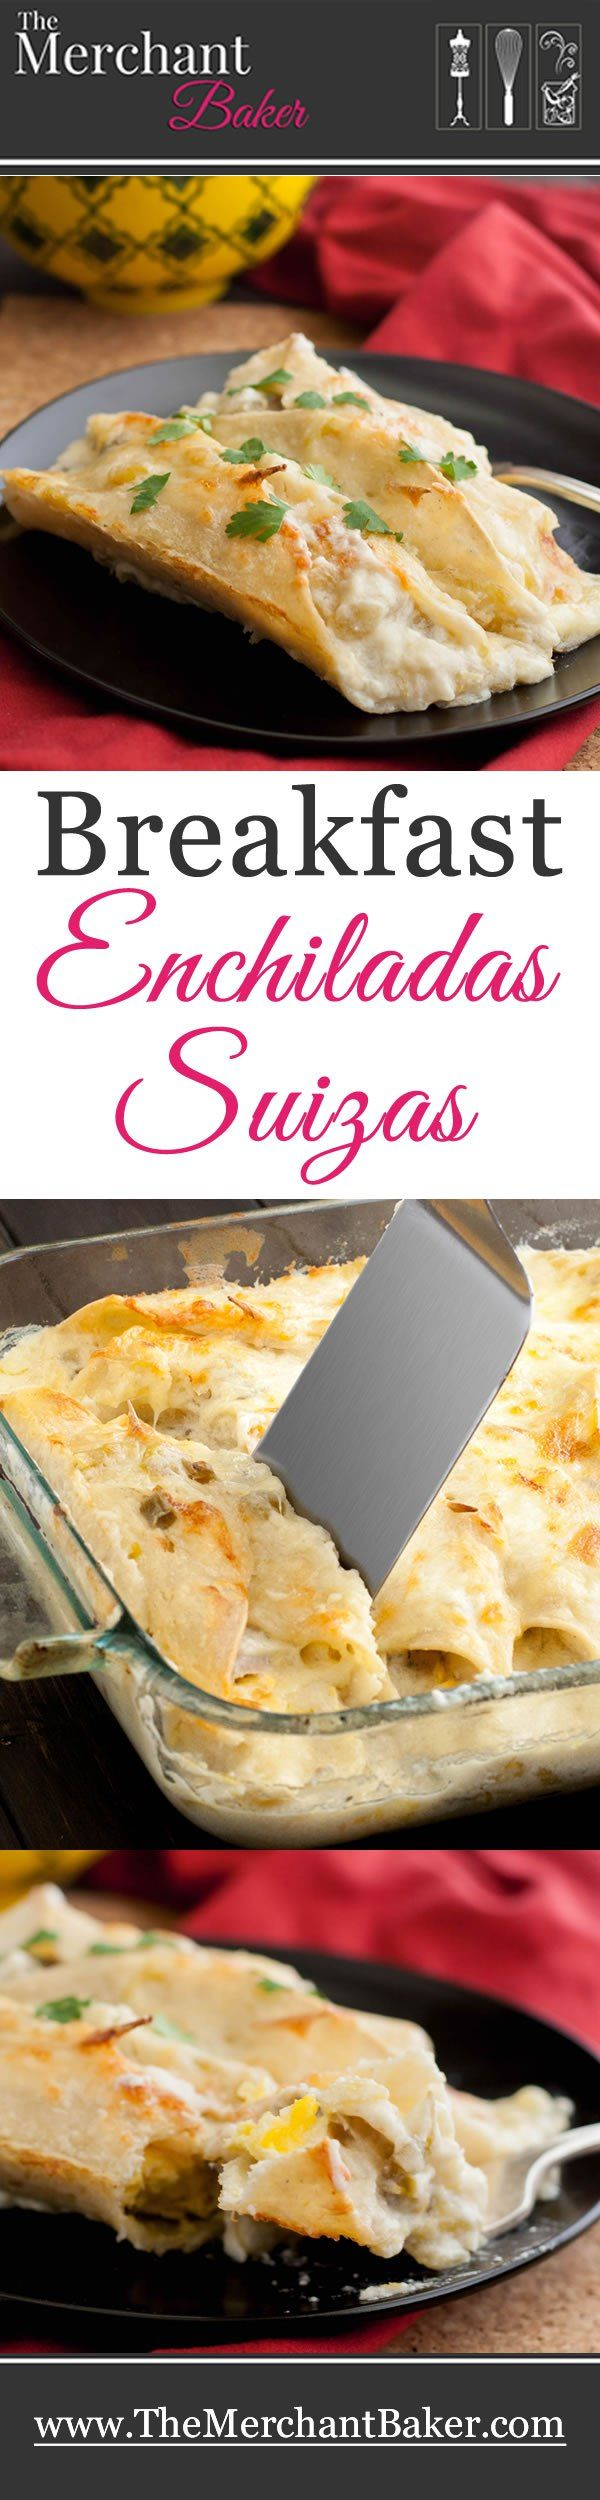 Breakfast Enchiladas Suizas. Scrambled eggs, sausage and Monterey Jack cheese are wrapped in corn tortillas and baked in a green chili sour cream sauce.